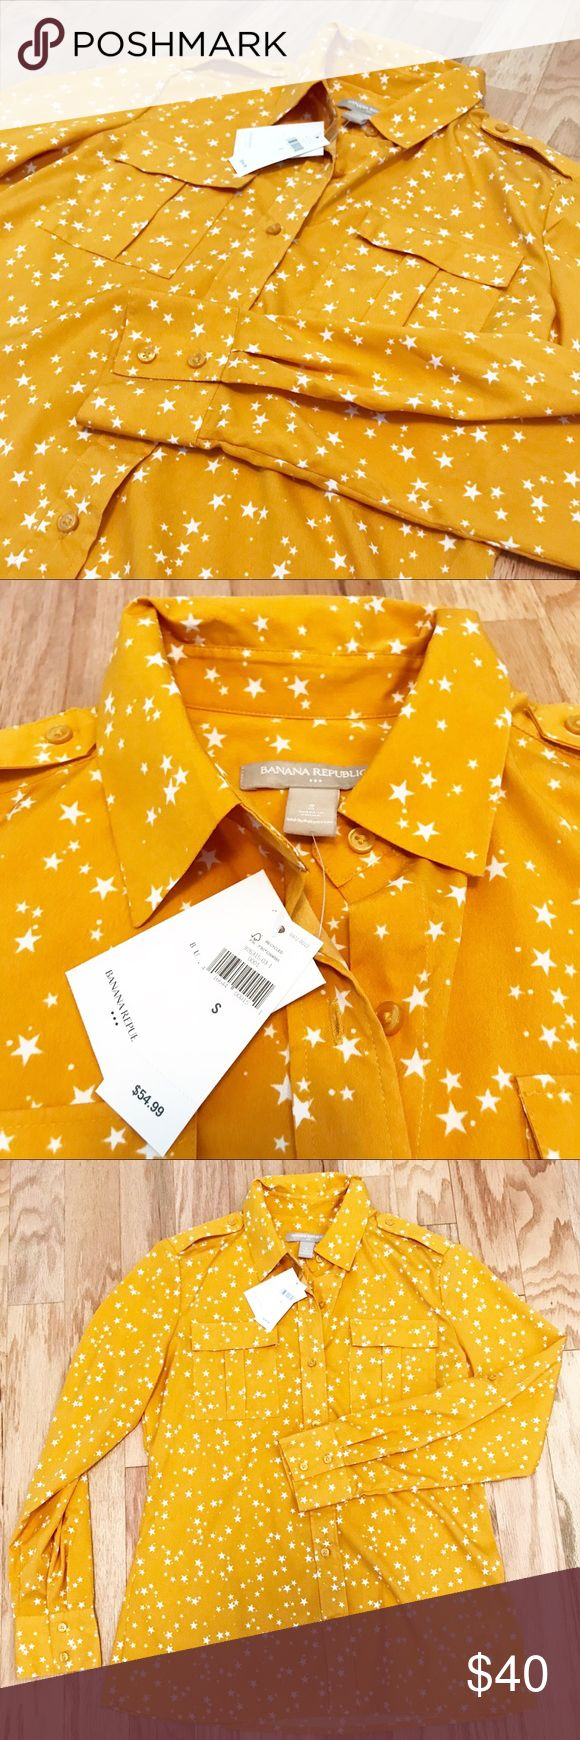 Banana Republic Collared Button Down Star Mustard Beautiful NWT brand new with tags mustard button up shirt. Military style and absolutely gorgeous gold / golden / mustard color with stars!! ⭐️ stars are cream / white! Top / shirt / blouse that is silky material Banana Republic Tops Button Down Shirts